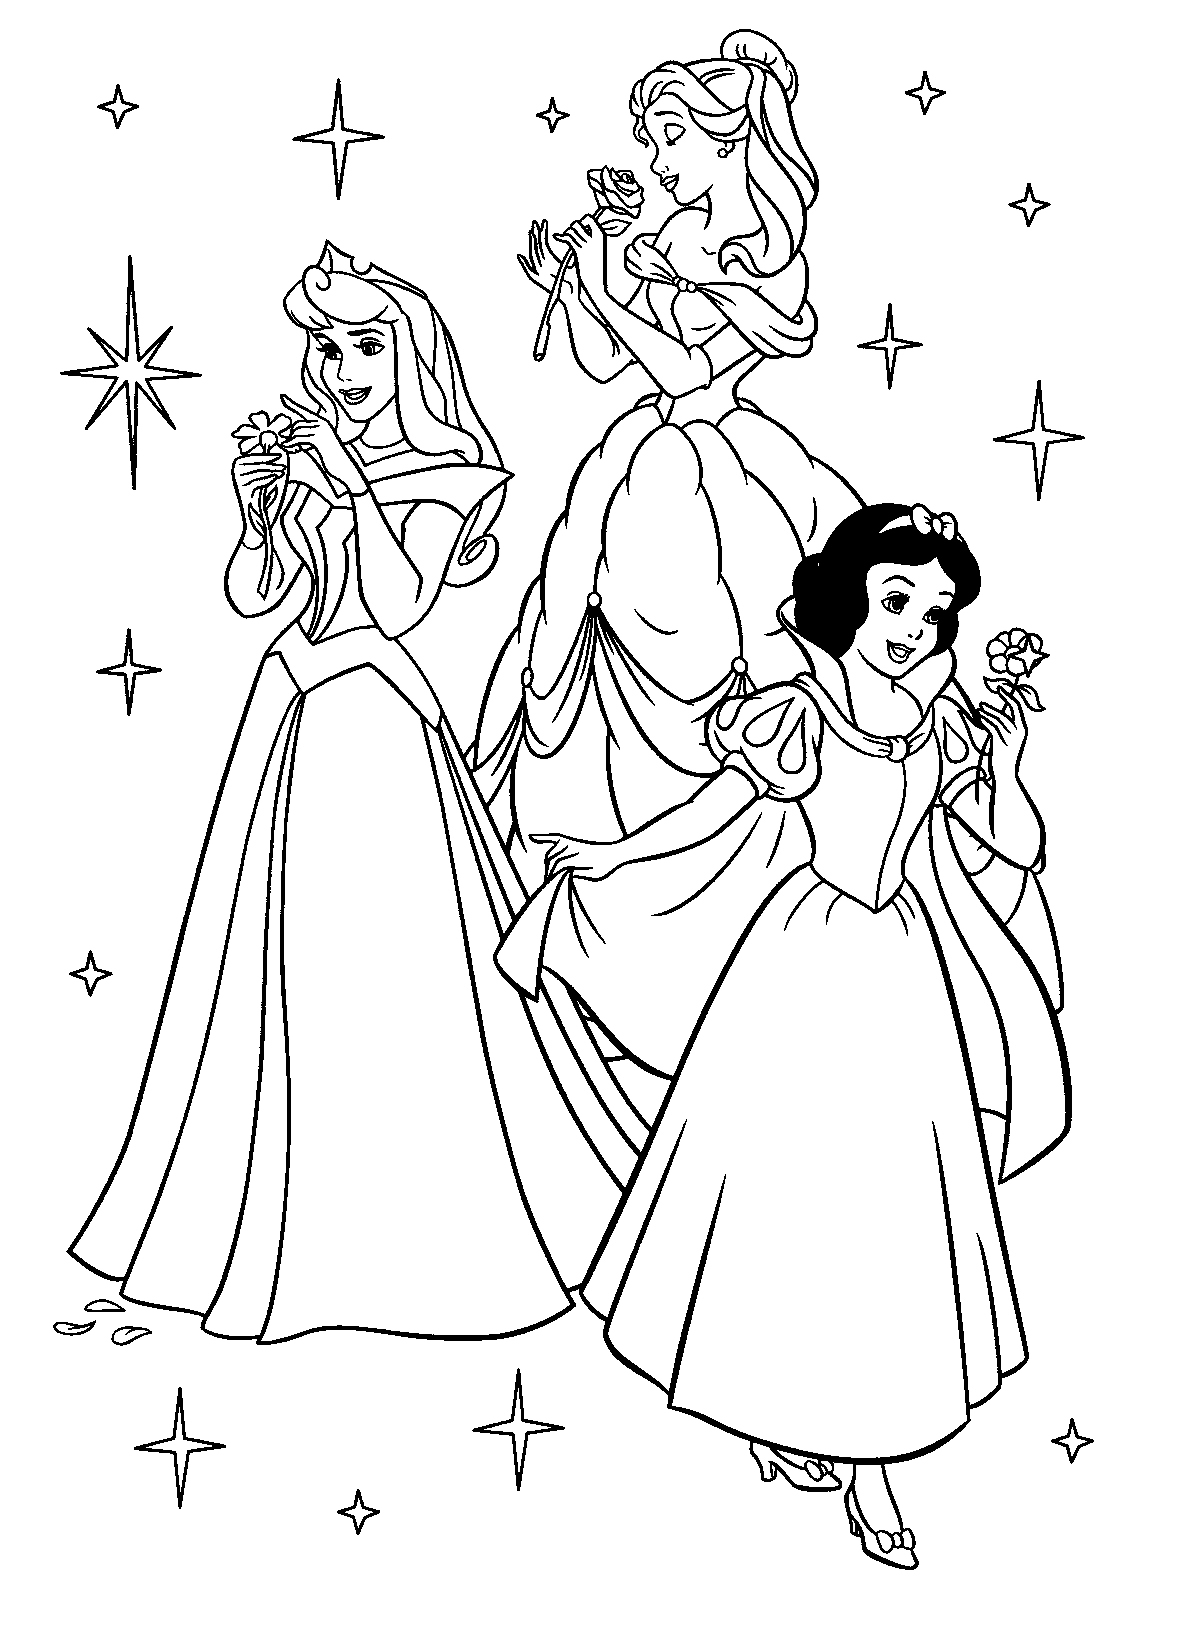 Disney Princesses Coloring Pages Free Coloring Pages